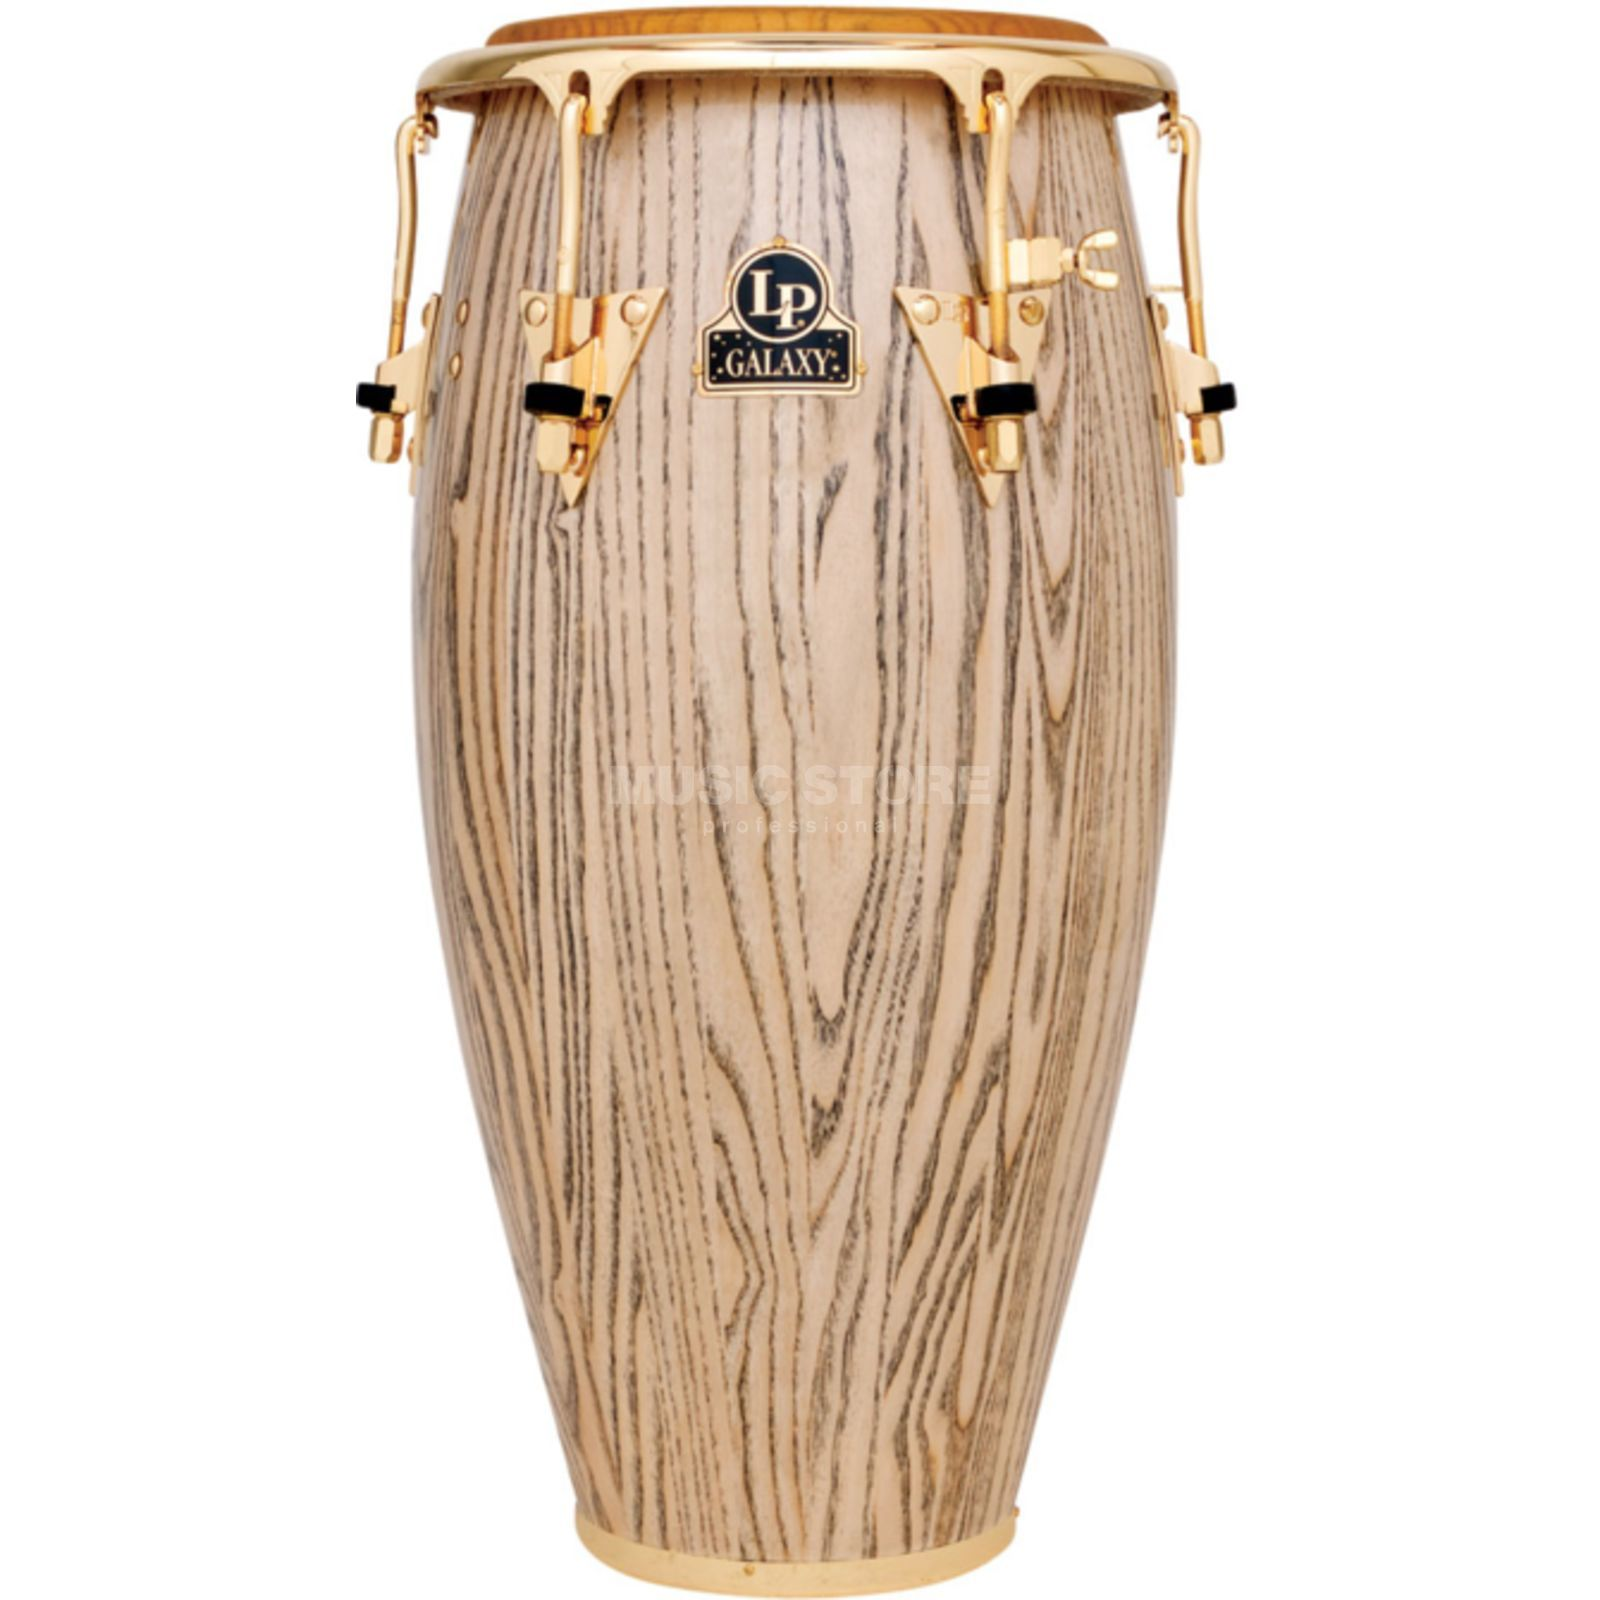 "Latin Percussion Galaxy Conga LP807Z-AW 12 1/2"" Tumba,Natural,Giovanni Produktbild"